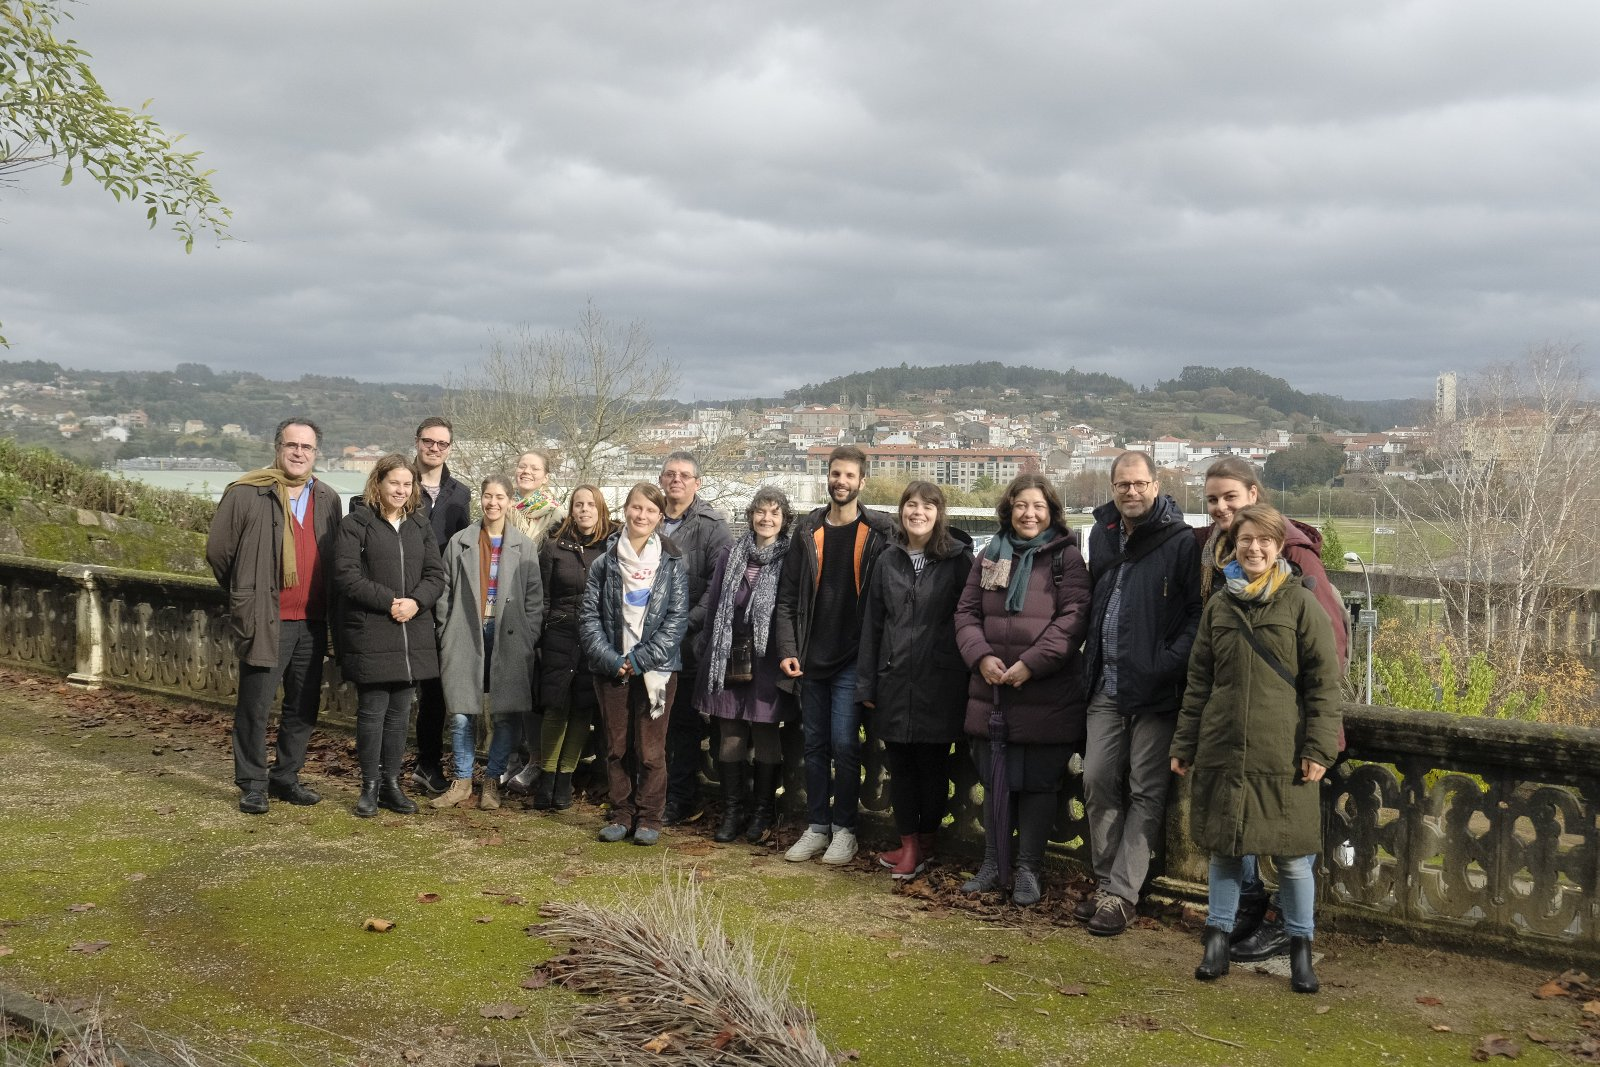 Second EuMIGS cohort with coordinators in A Coruna